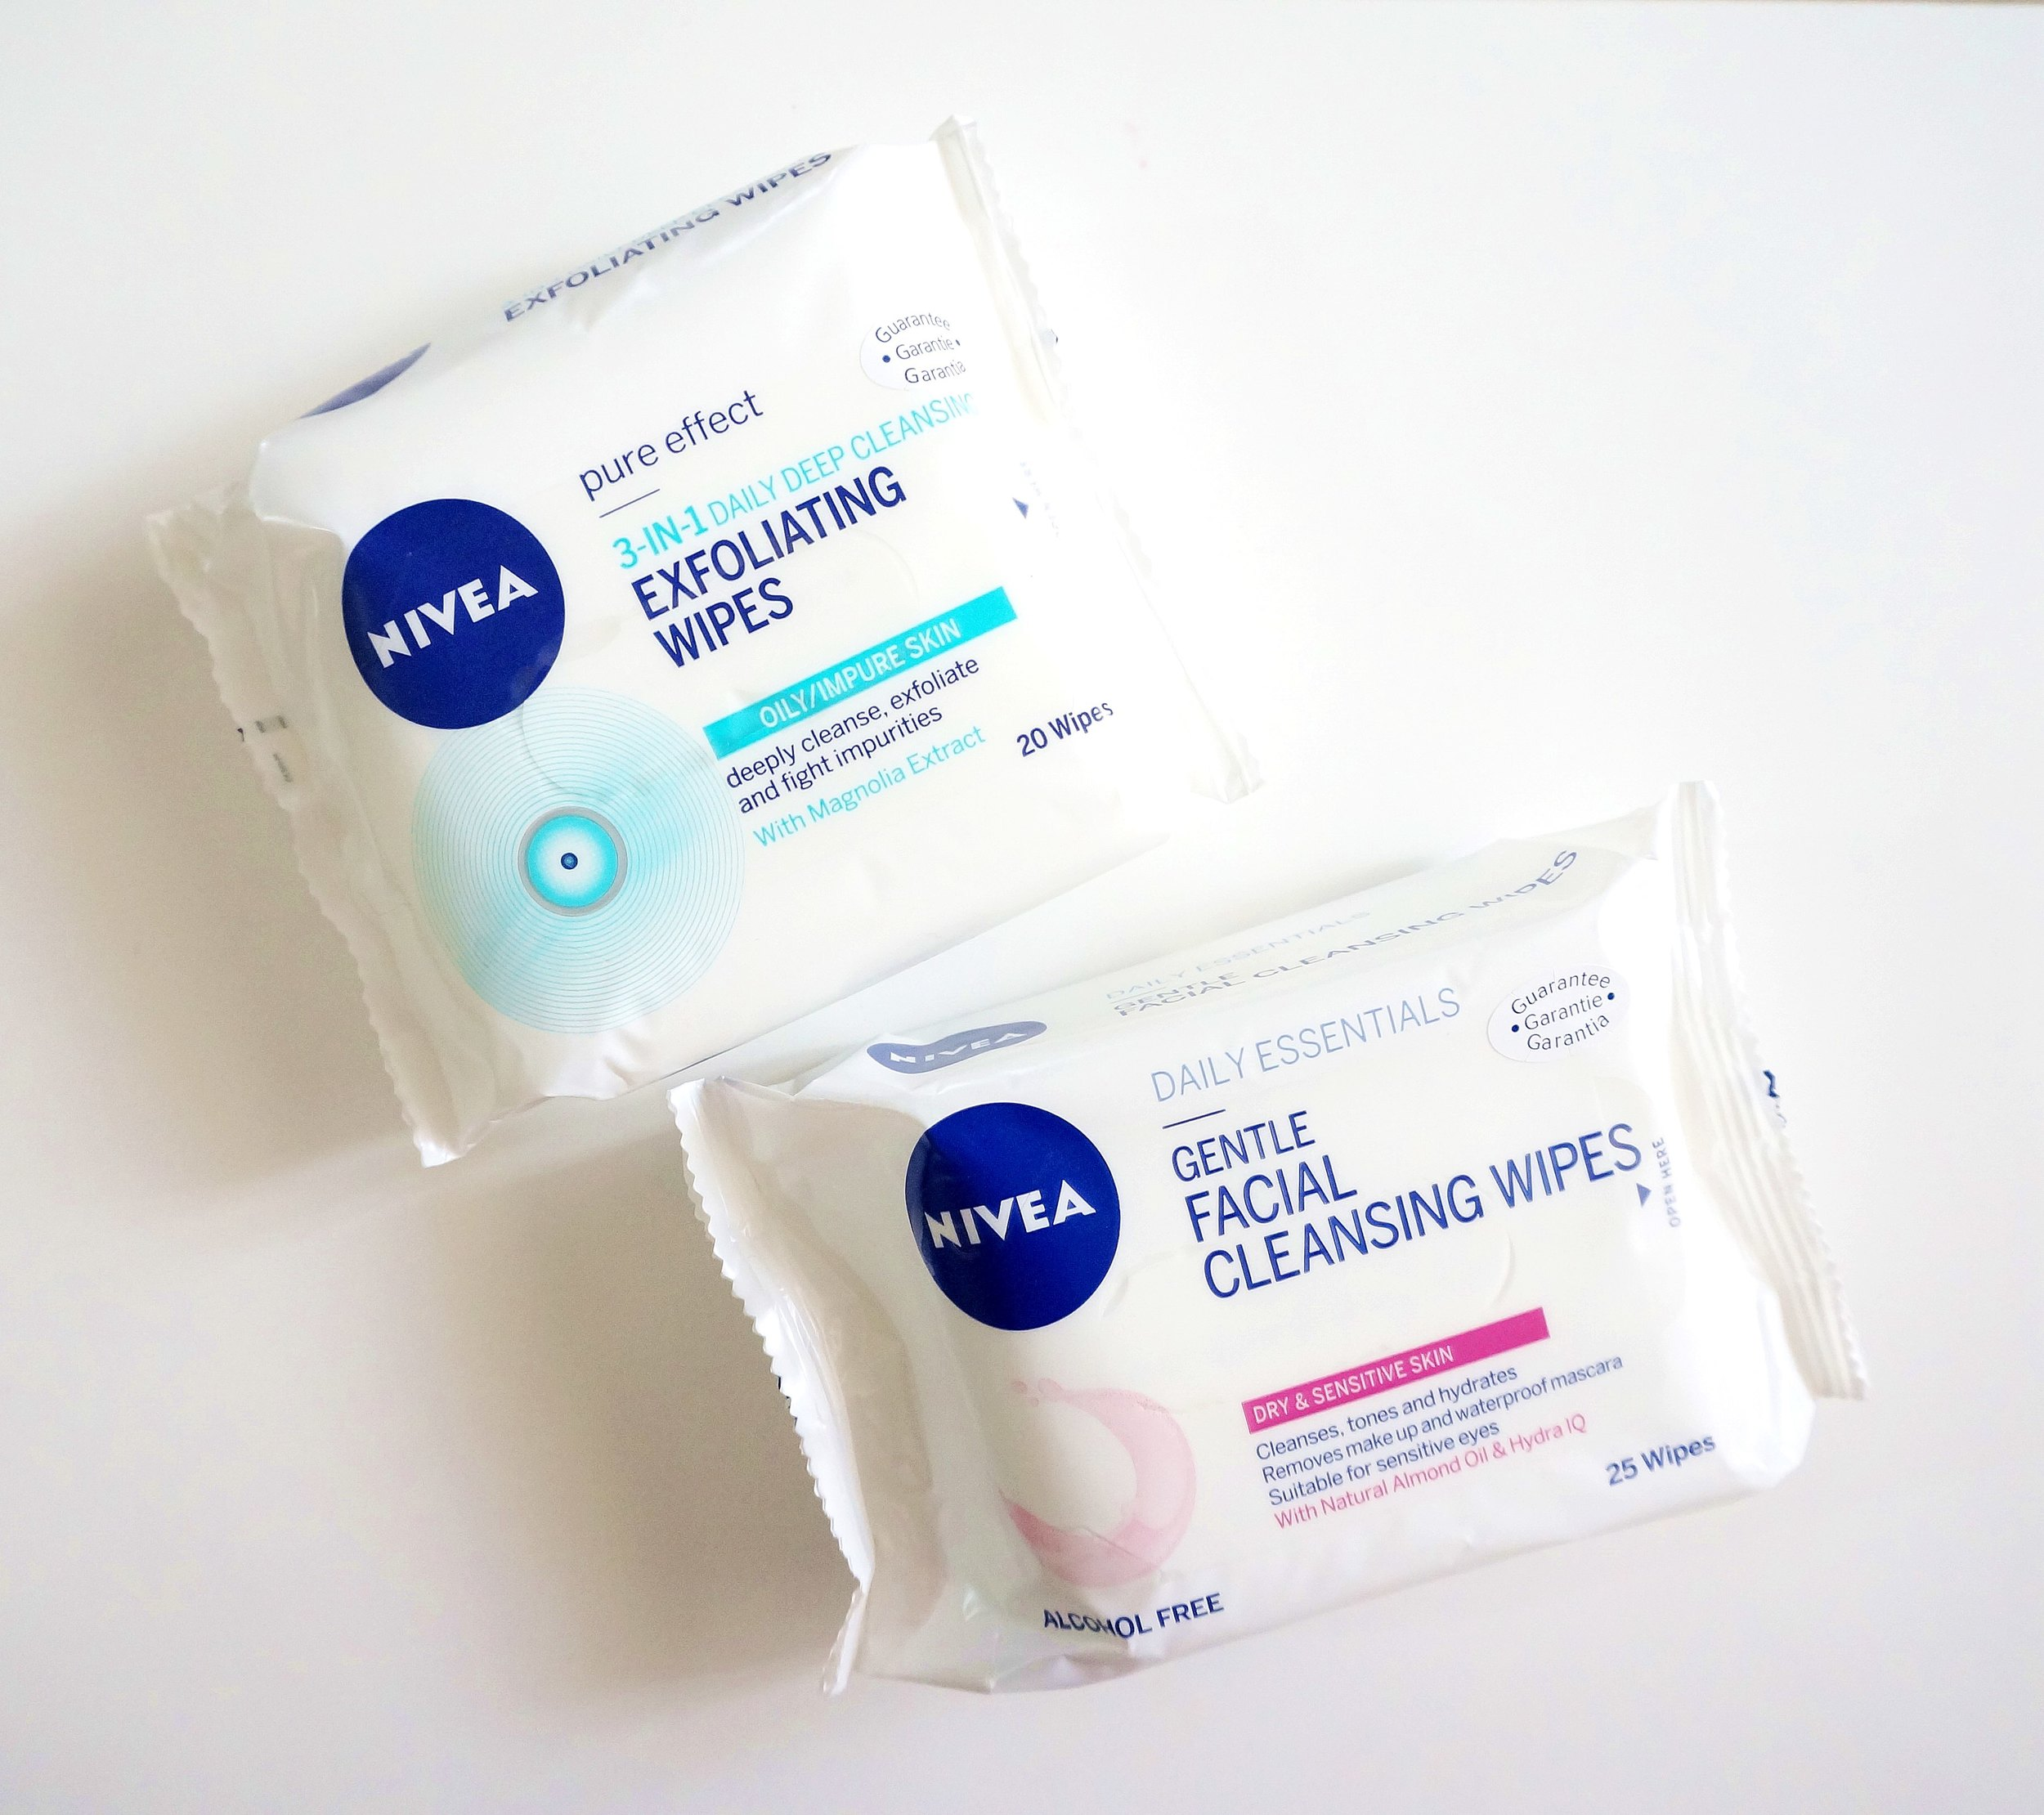 New From Nivea Gentle Facial Cleansing Wipes And Exfoliating